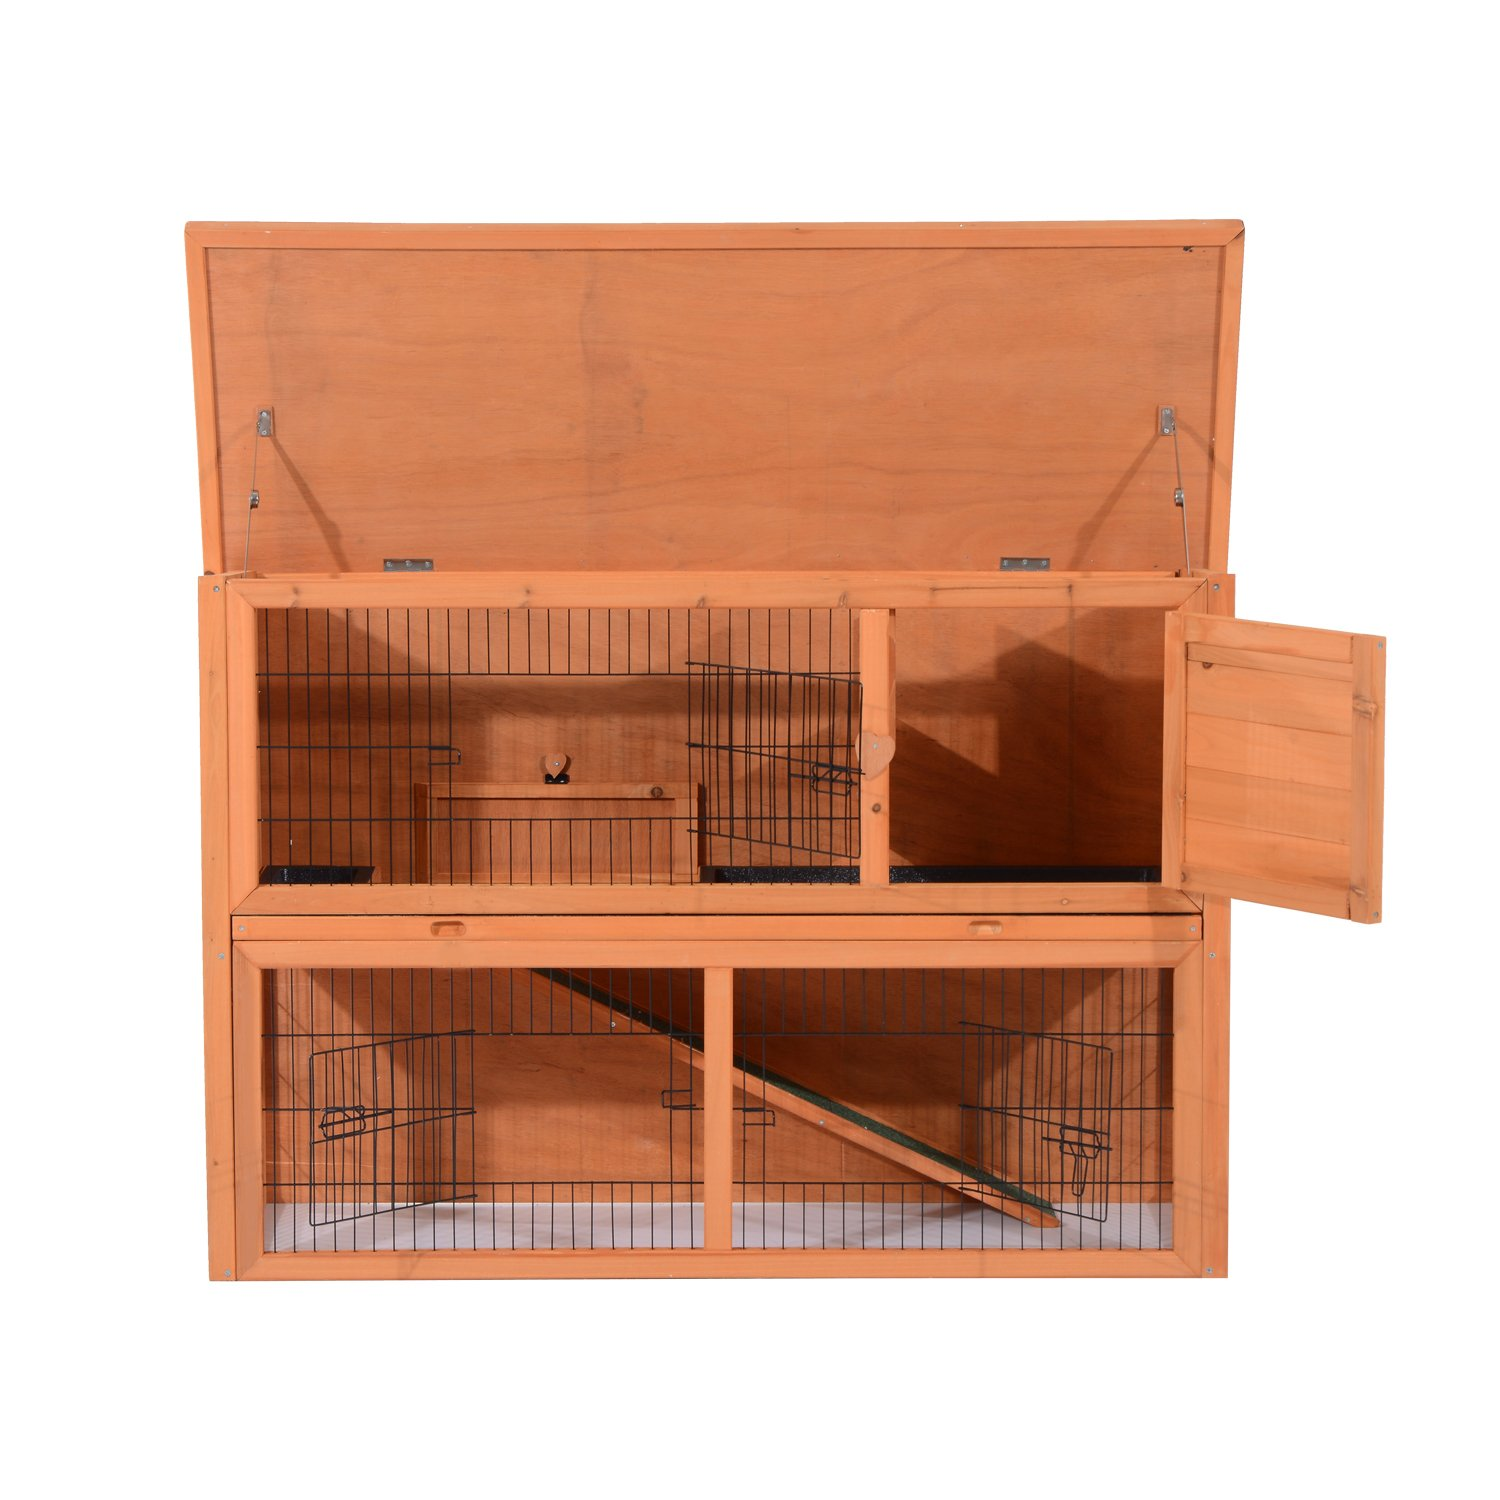 PawHut 48'' Multi Level Compact Wooden Playpen Outdoor Rabbit Small Animal Pet Cage With Enclosed Run by PawHut (Image #6)